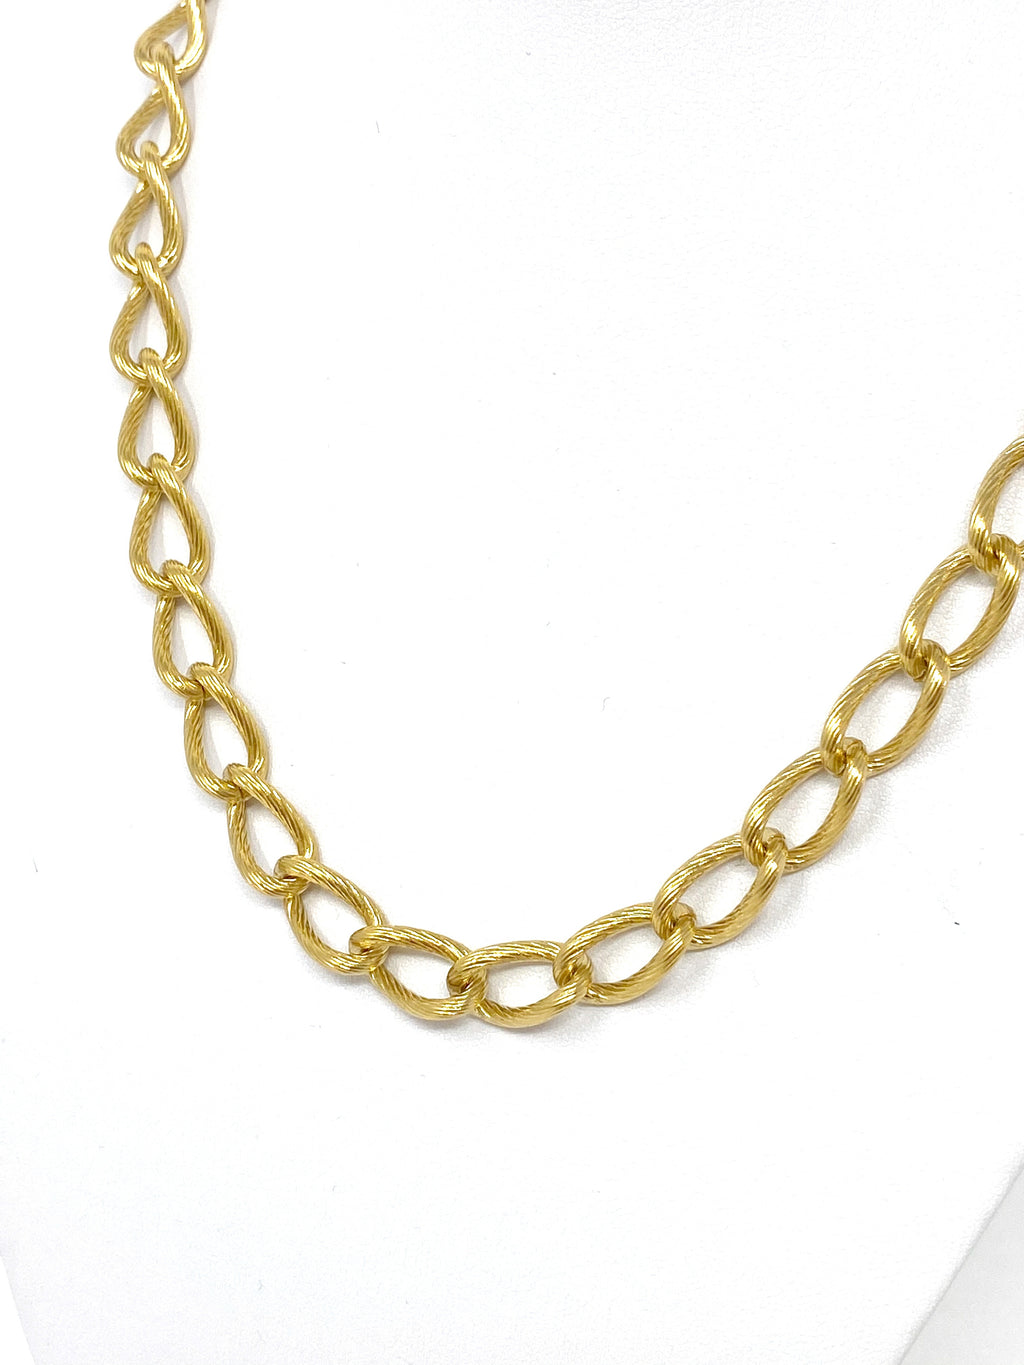 The Golden Isle Chainlink Necklace